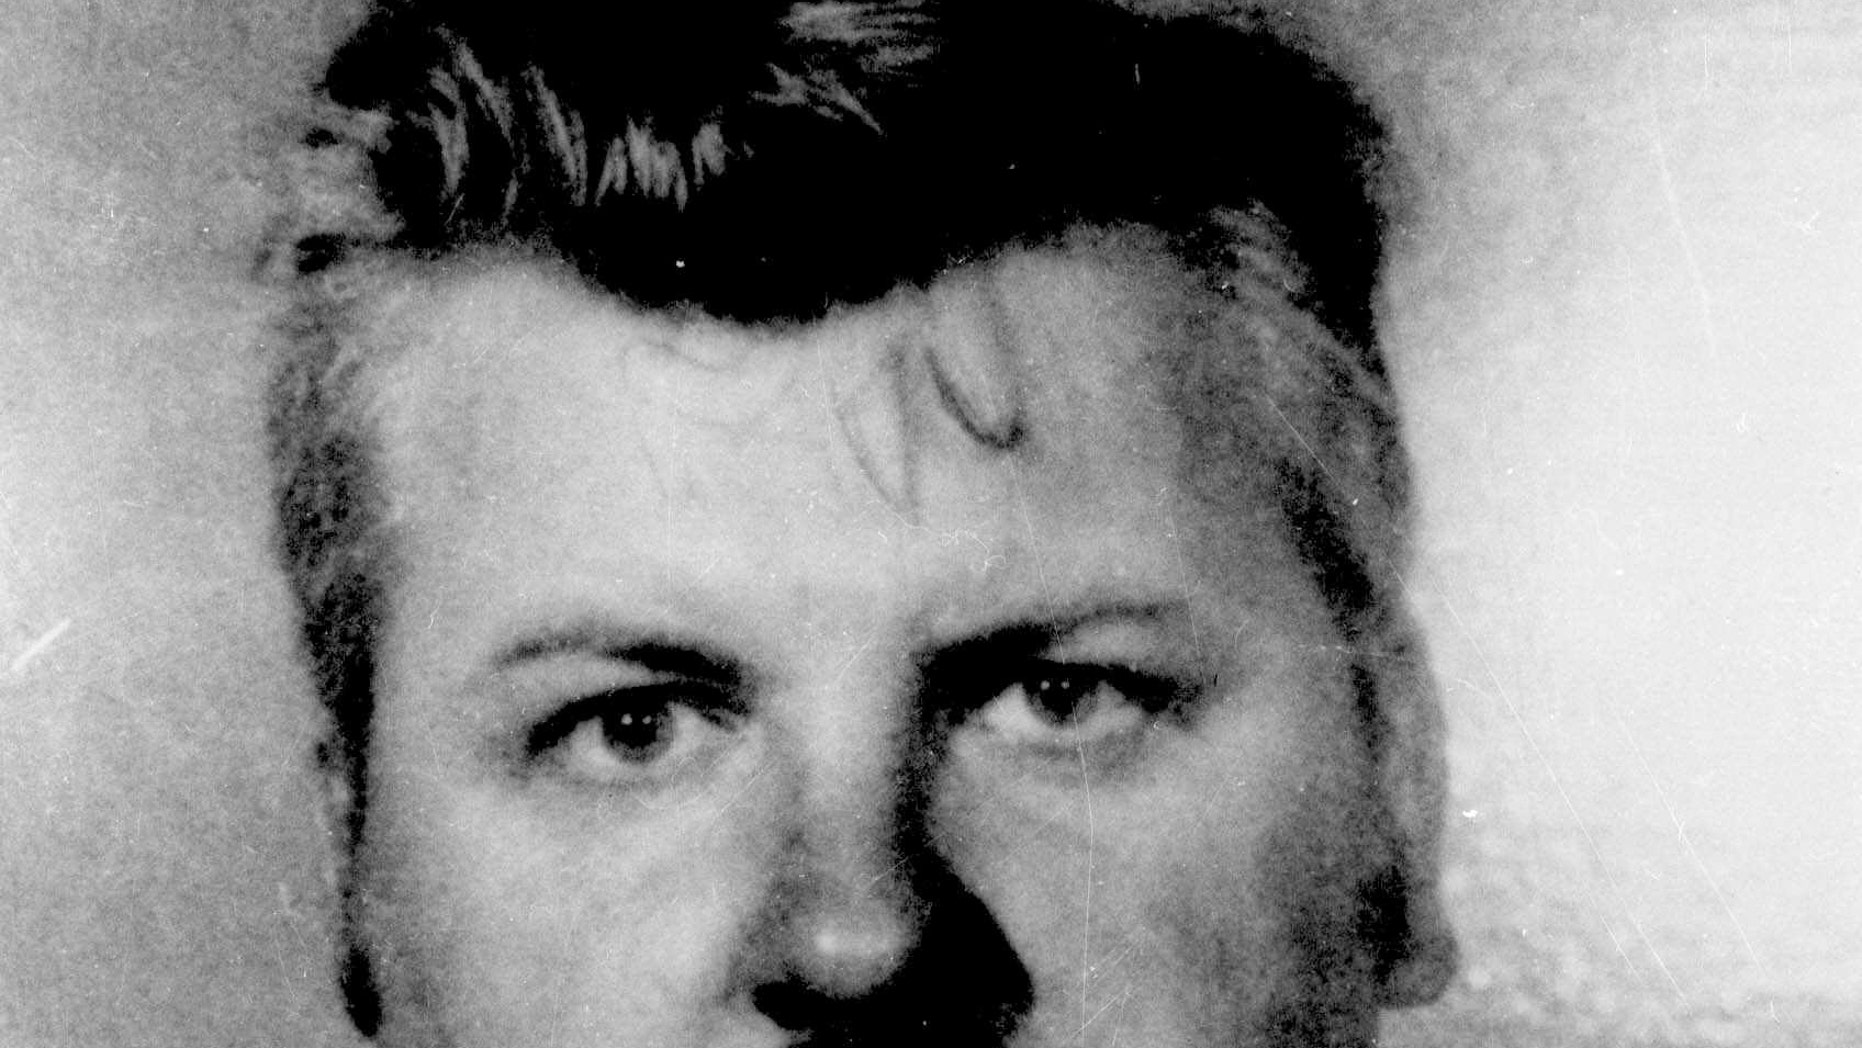 Prosecutors approve search for Gacy victims | Fox News